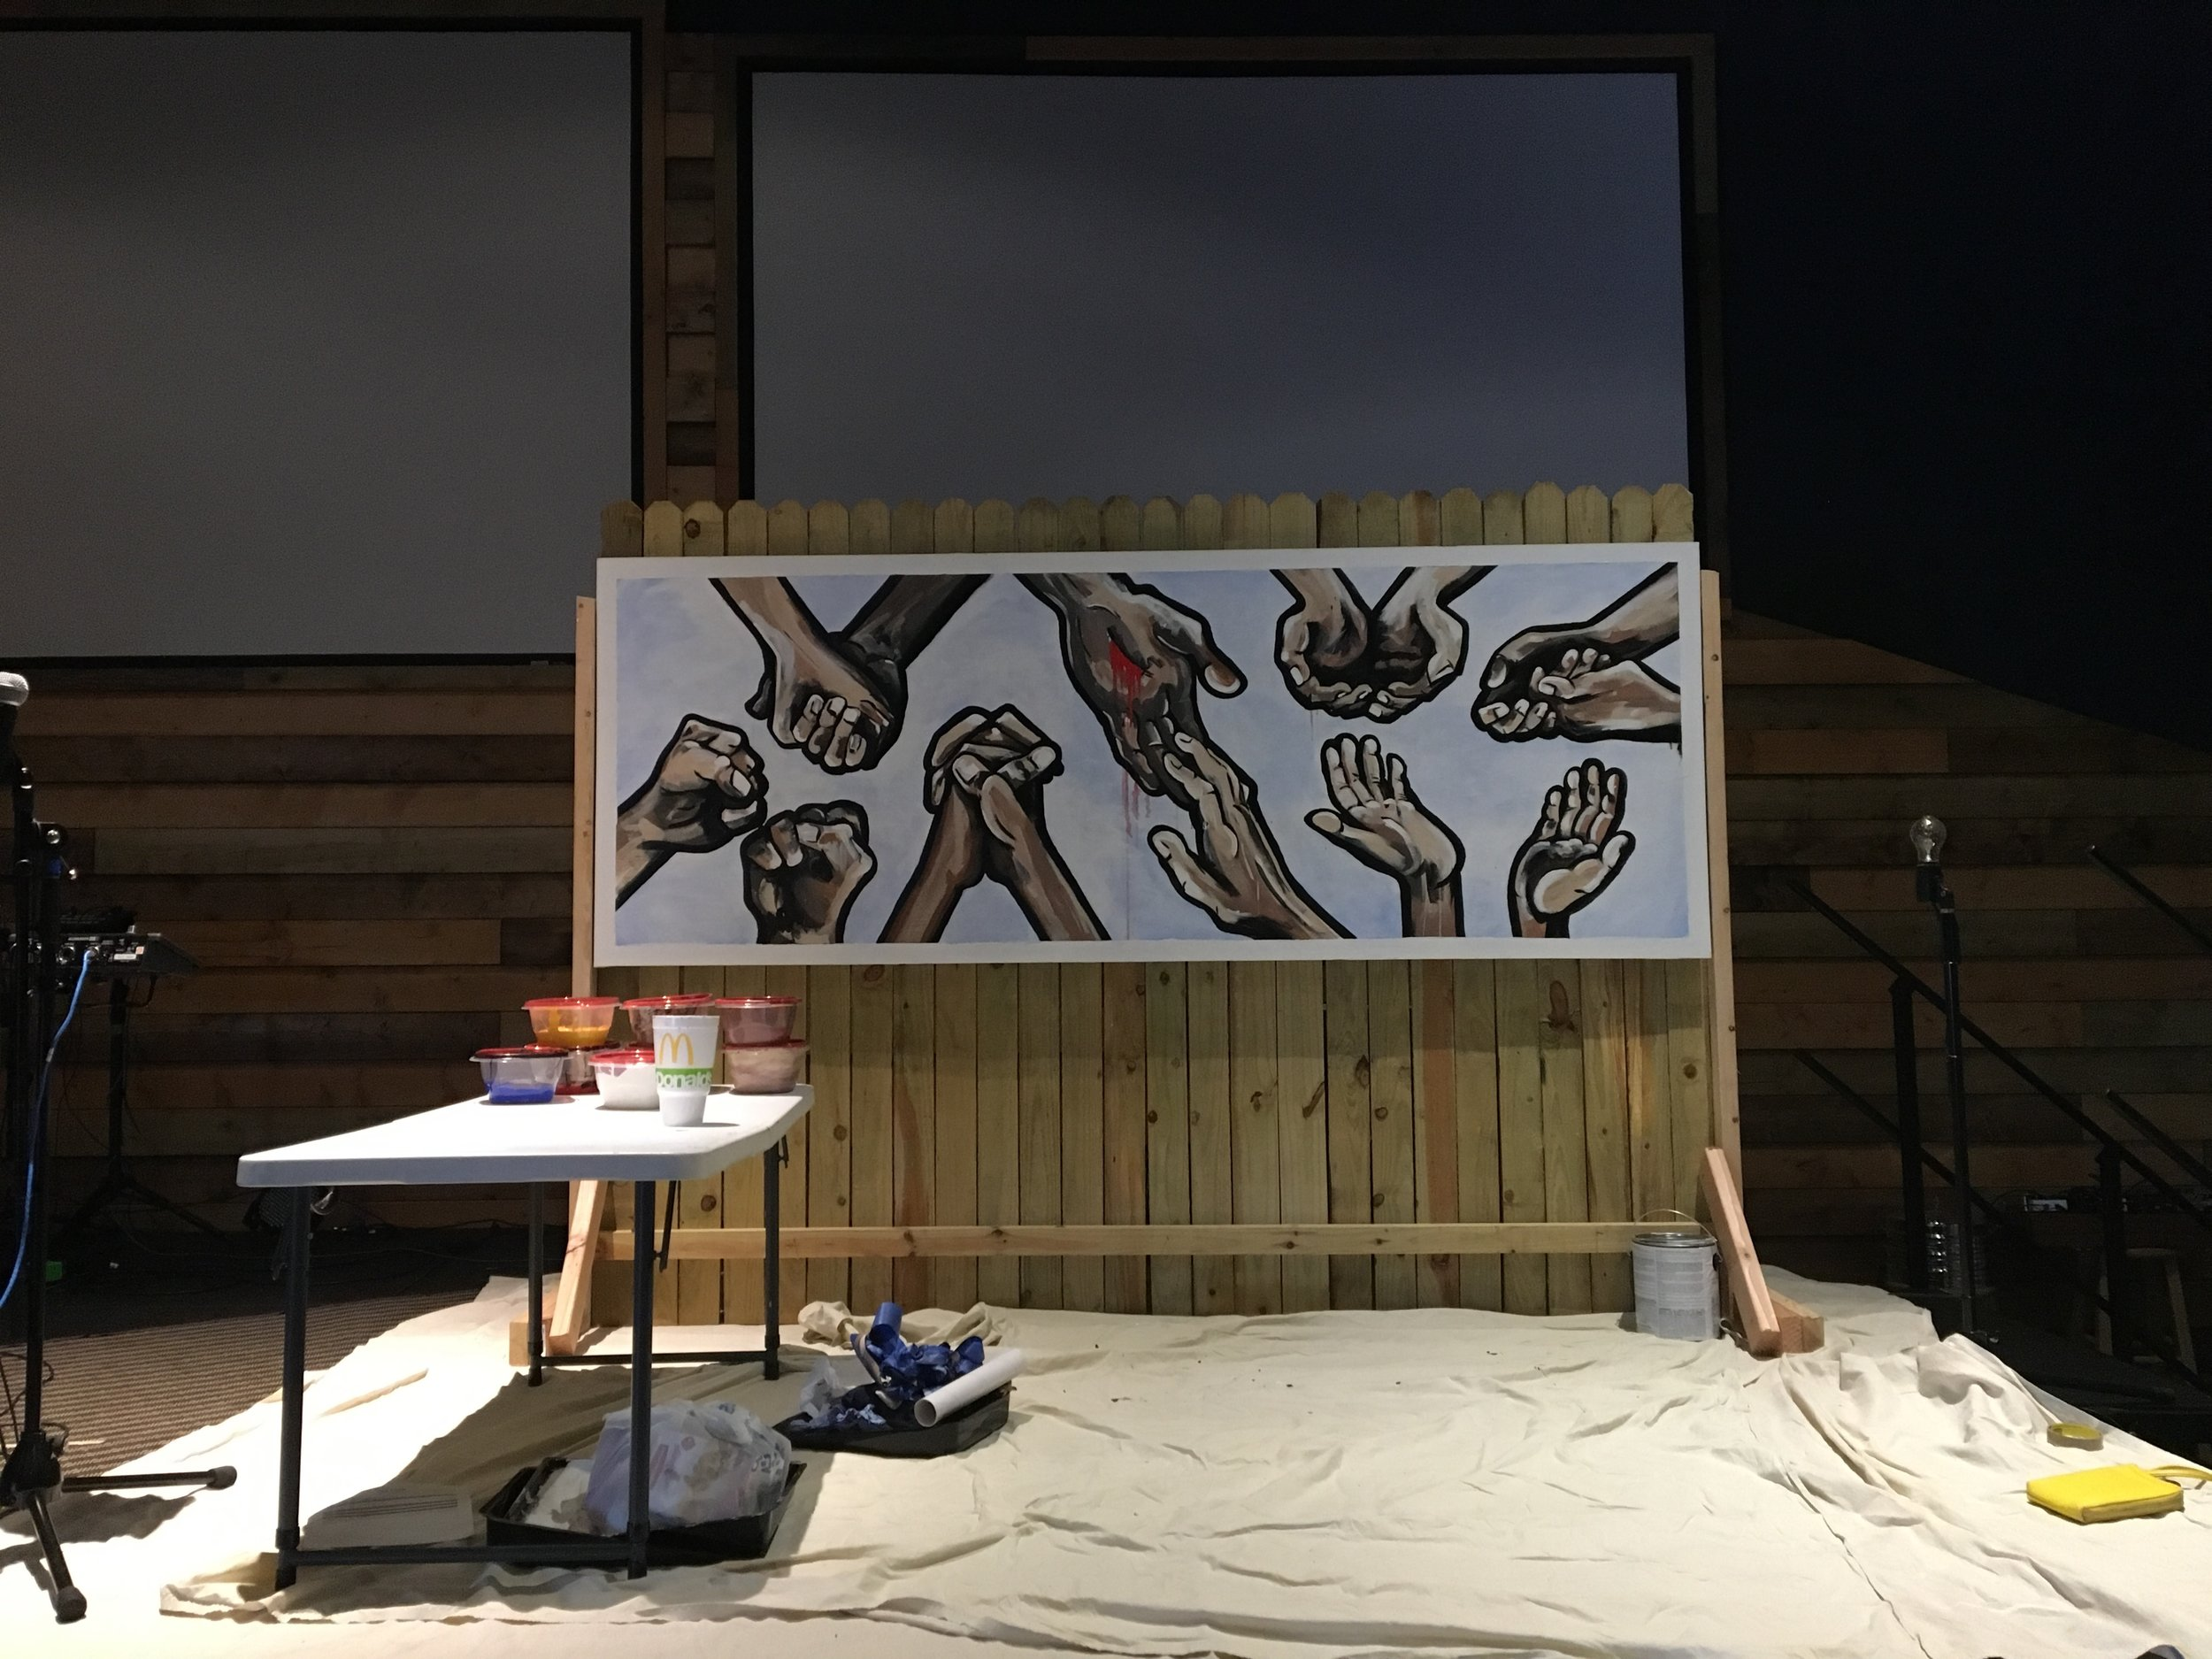 I do live paintings-- they combine two things I love, being in front of an audience and intimately sharing my artwork. Just kidding I cringe at the thought of both of those, that's why I do it.